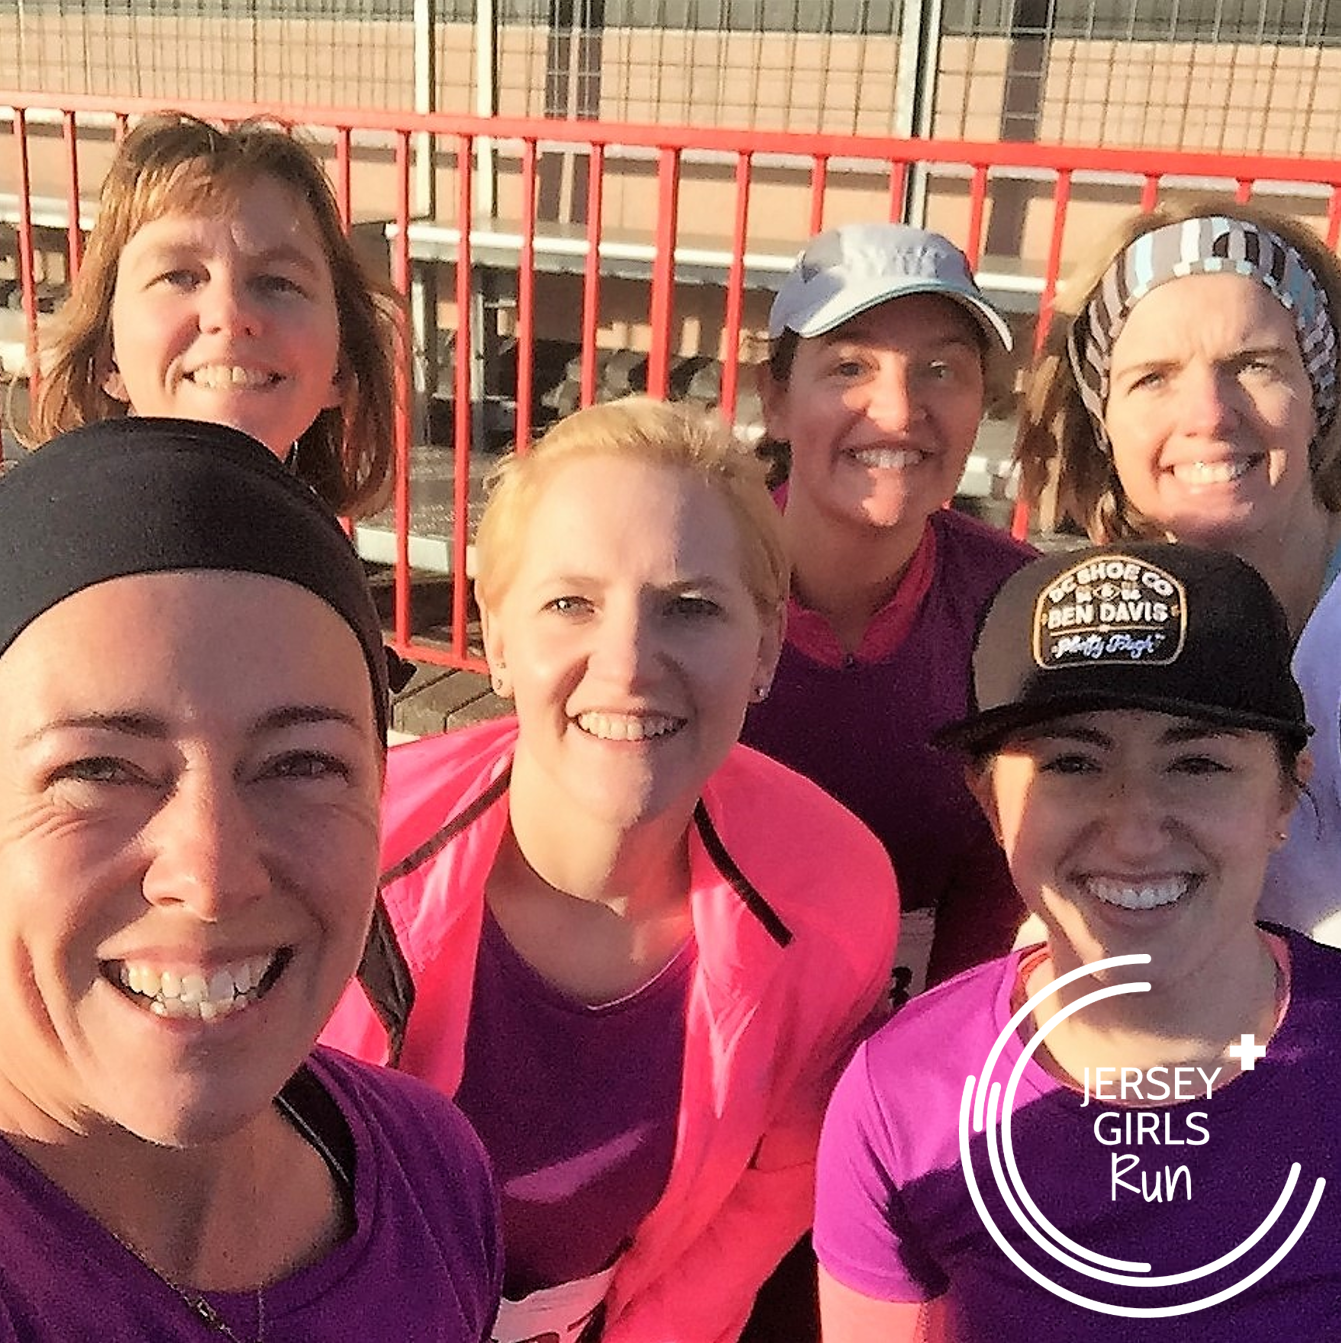 13 NOVEMBER 2016 - Jersey Spartan Athletics Club Half Marathon - Six JERSEY GIRLS took part in the Autumn Half Marathon which took them on a challenging 21.1km route from FB Fields, up Rue Saint Thomas at the side of Longueville Manor, past La Hougue Bie and on to St Martin.  After all the climbing, they were then reward with downhill towards Gorey before then heading on to the coast all the way to Le Hocq then back inland to finish at FB Fields.This was a fantastic personal challenge and for most JERSEY GIRLS, their first half marathon.  Many JERSEY GIRLS also gave up their time to marshall on the day too.